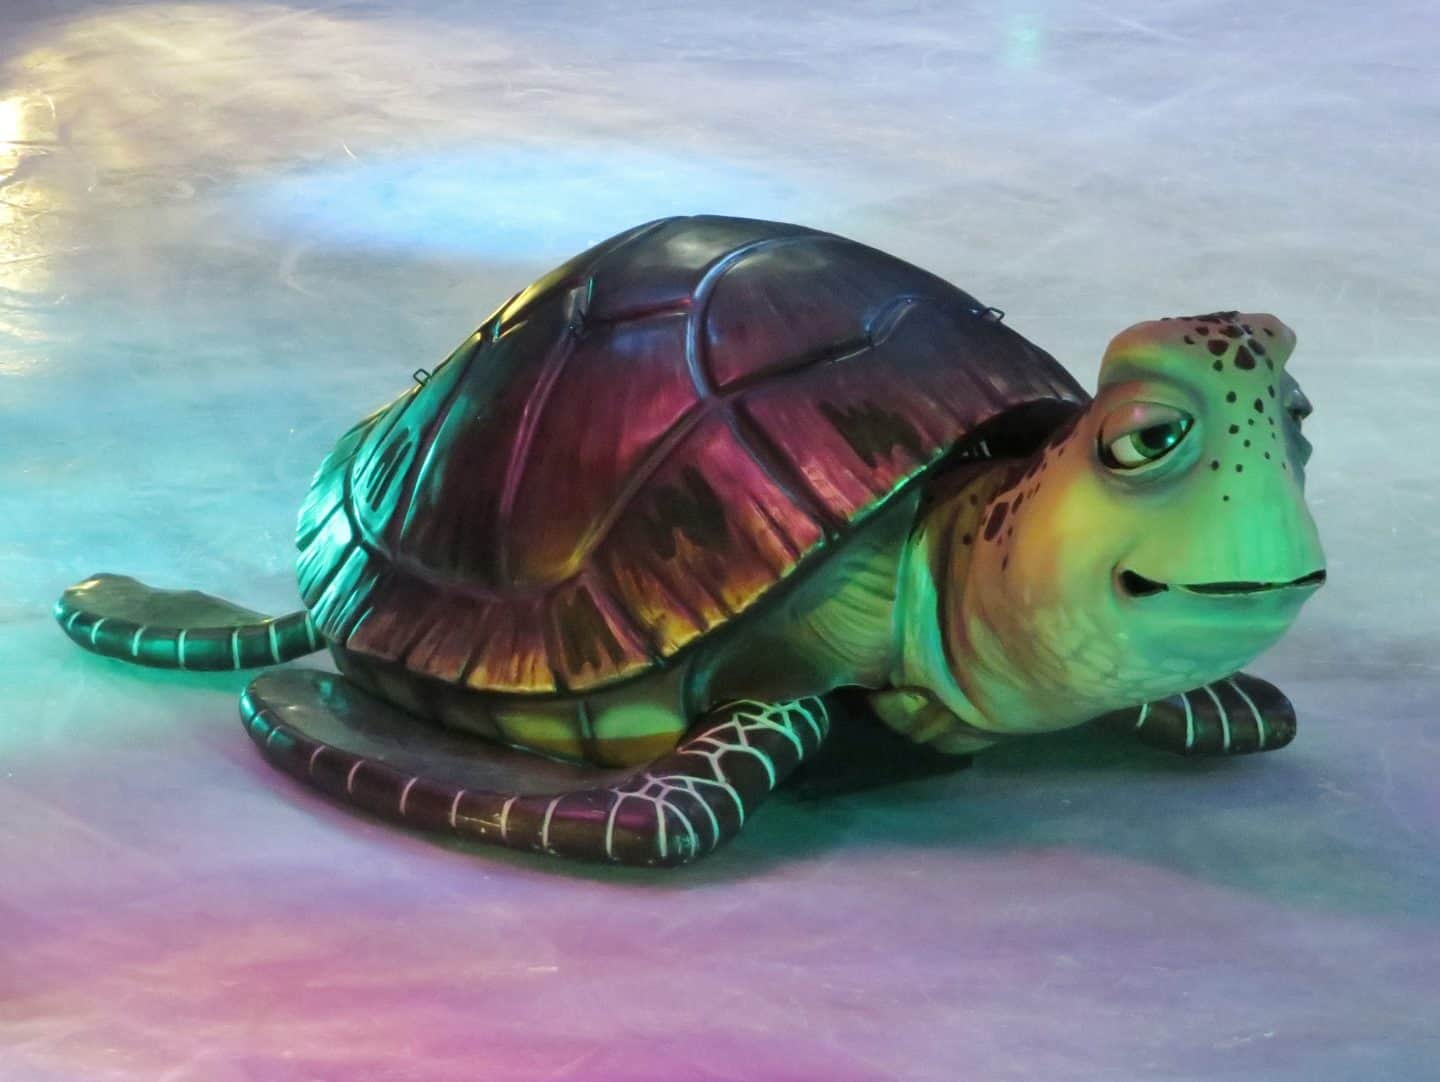 Huge turtle from Finding Dory on the ice in Disney On Ice celebrates 100 Years of Magic